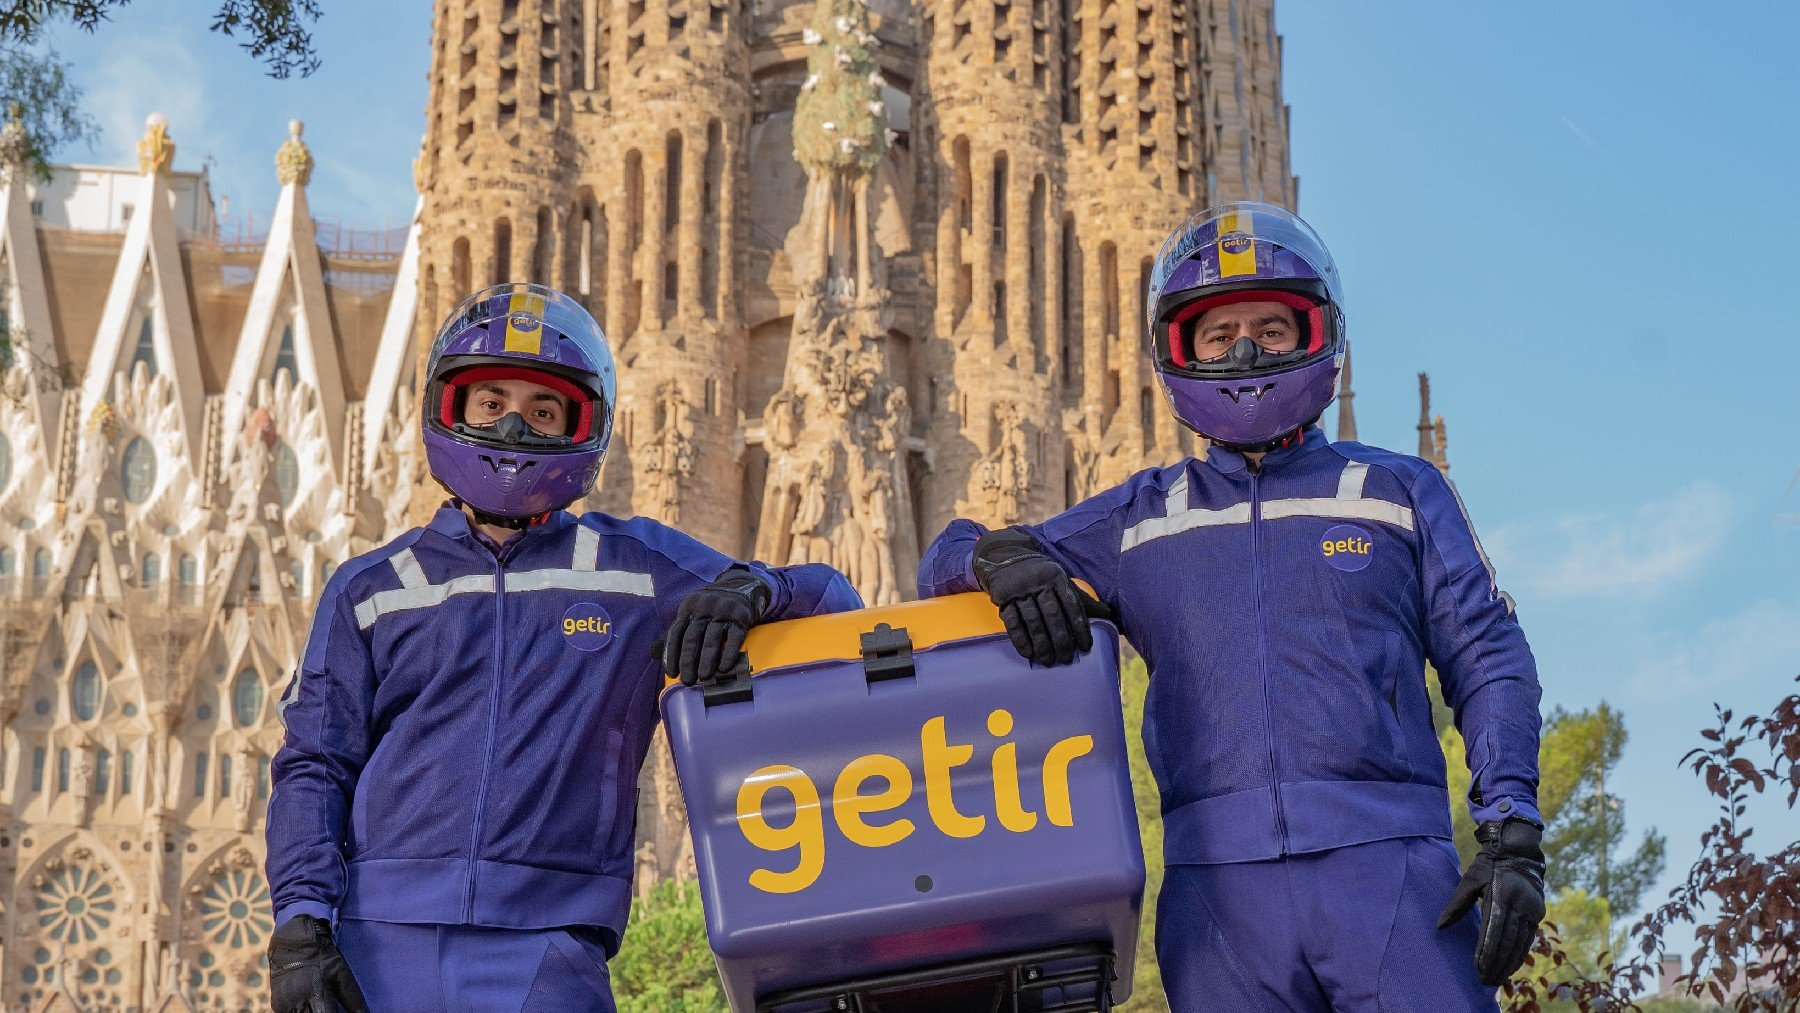 Getir arrives in Spain to compete with Glovo: it will hire almost 2,000 riders indefinitely until 2022